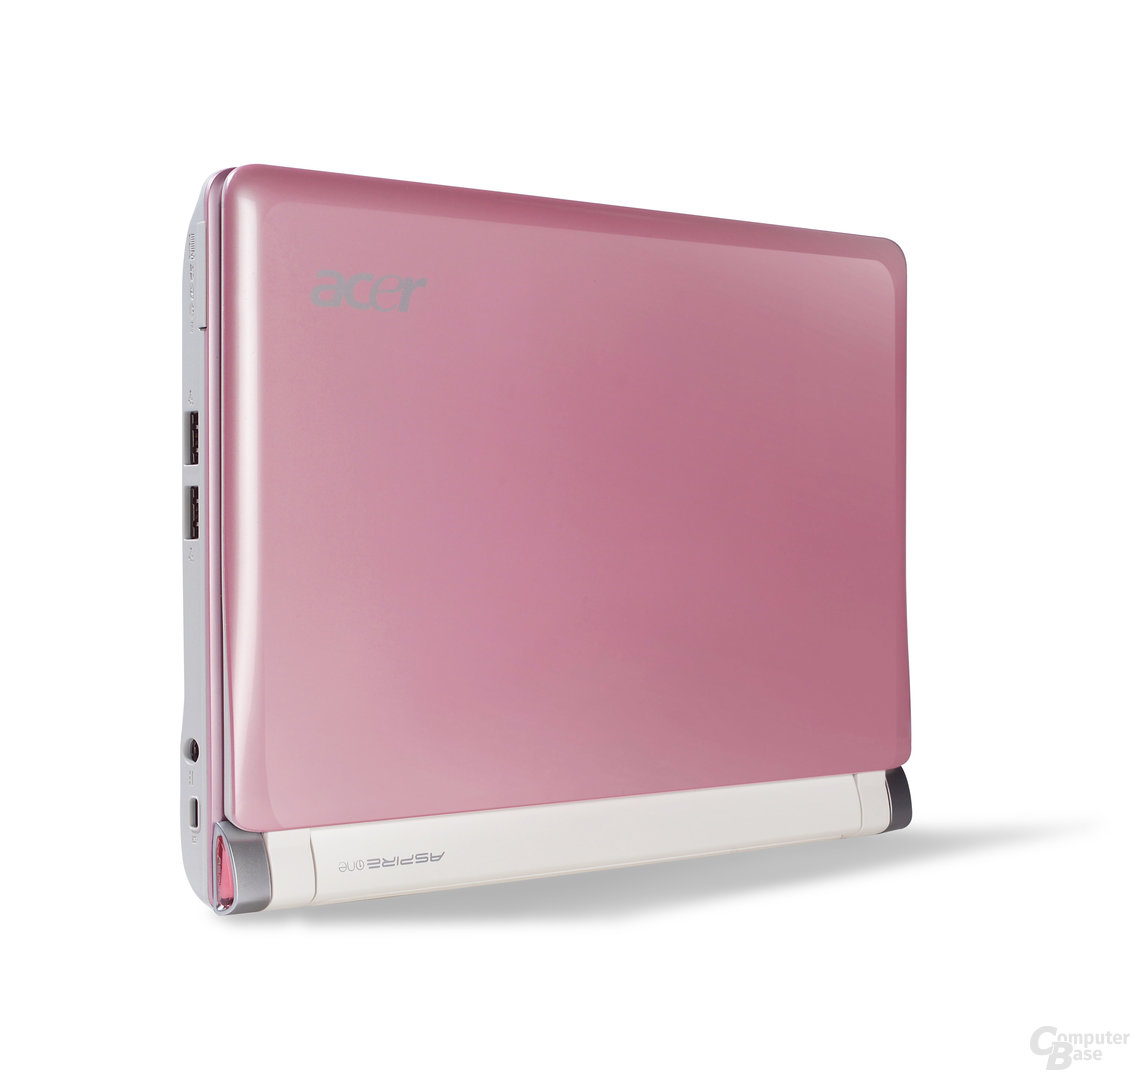 Acer Aspire one D250 in pink